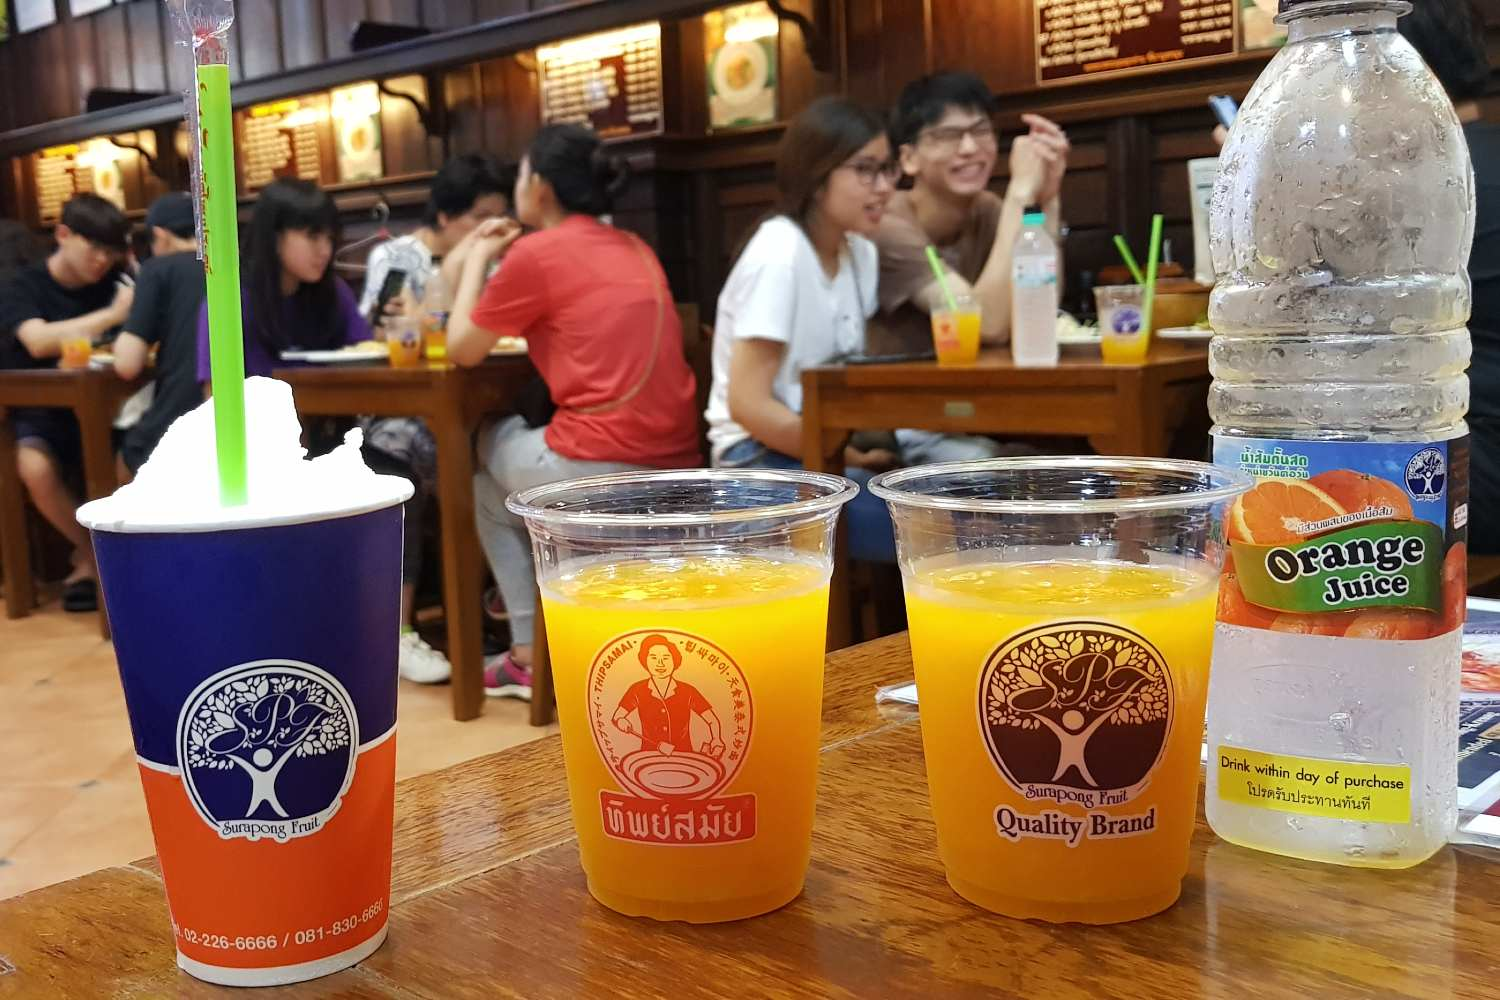 Super yummy orange juice and icy coconut at thipsamai in Old Town Bangkok